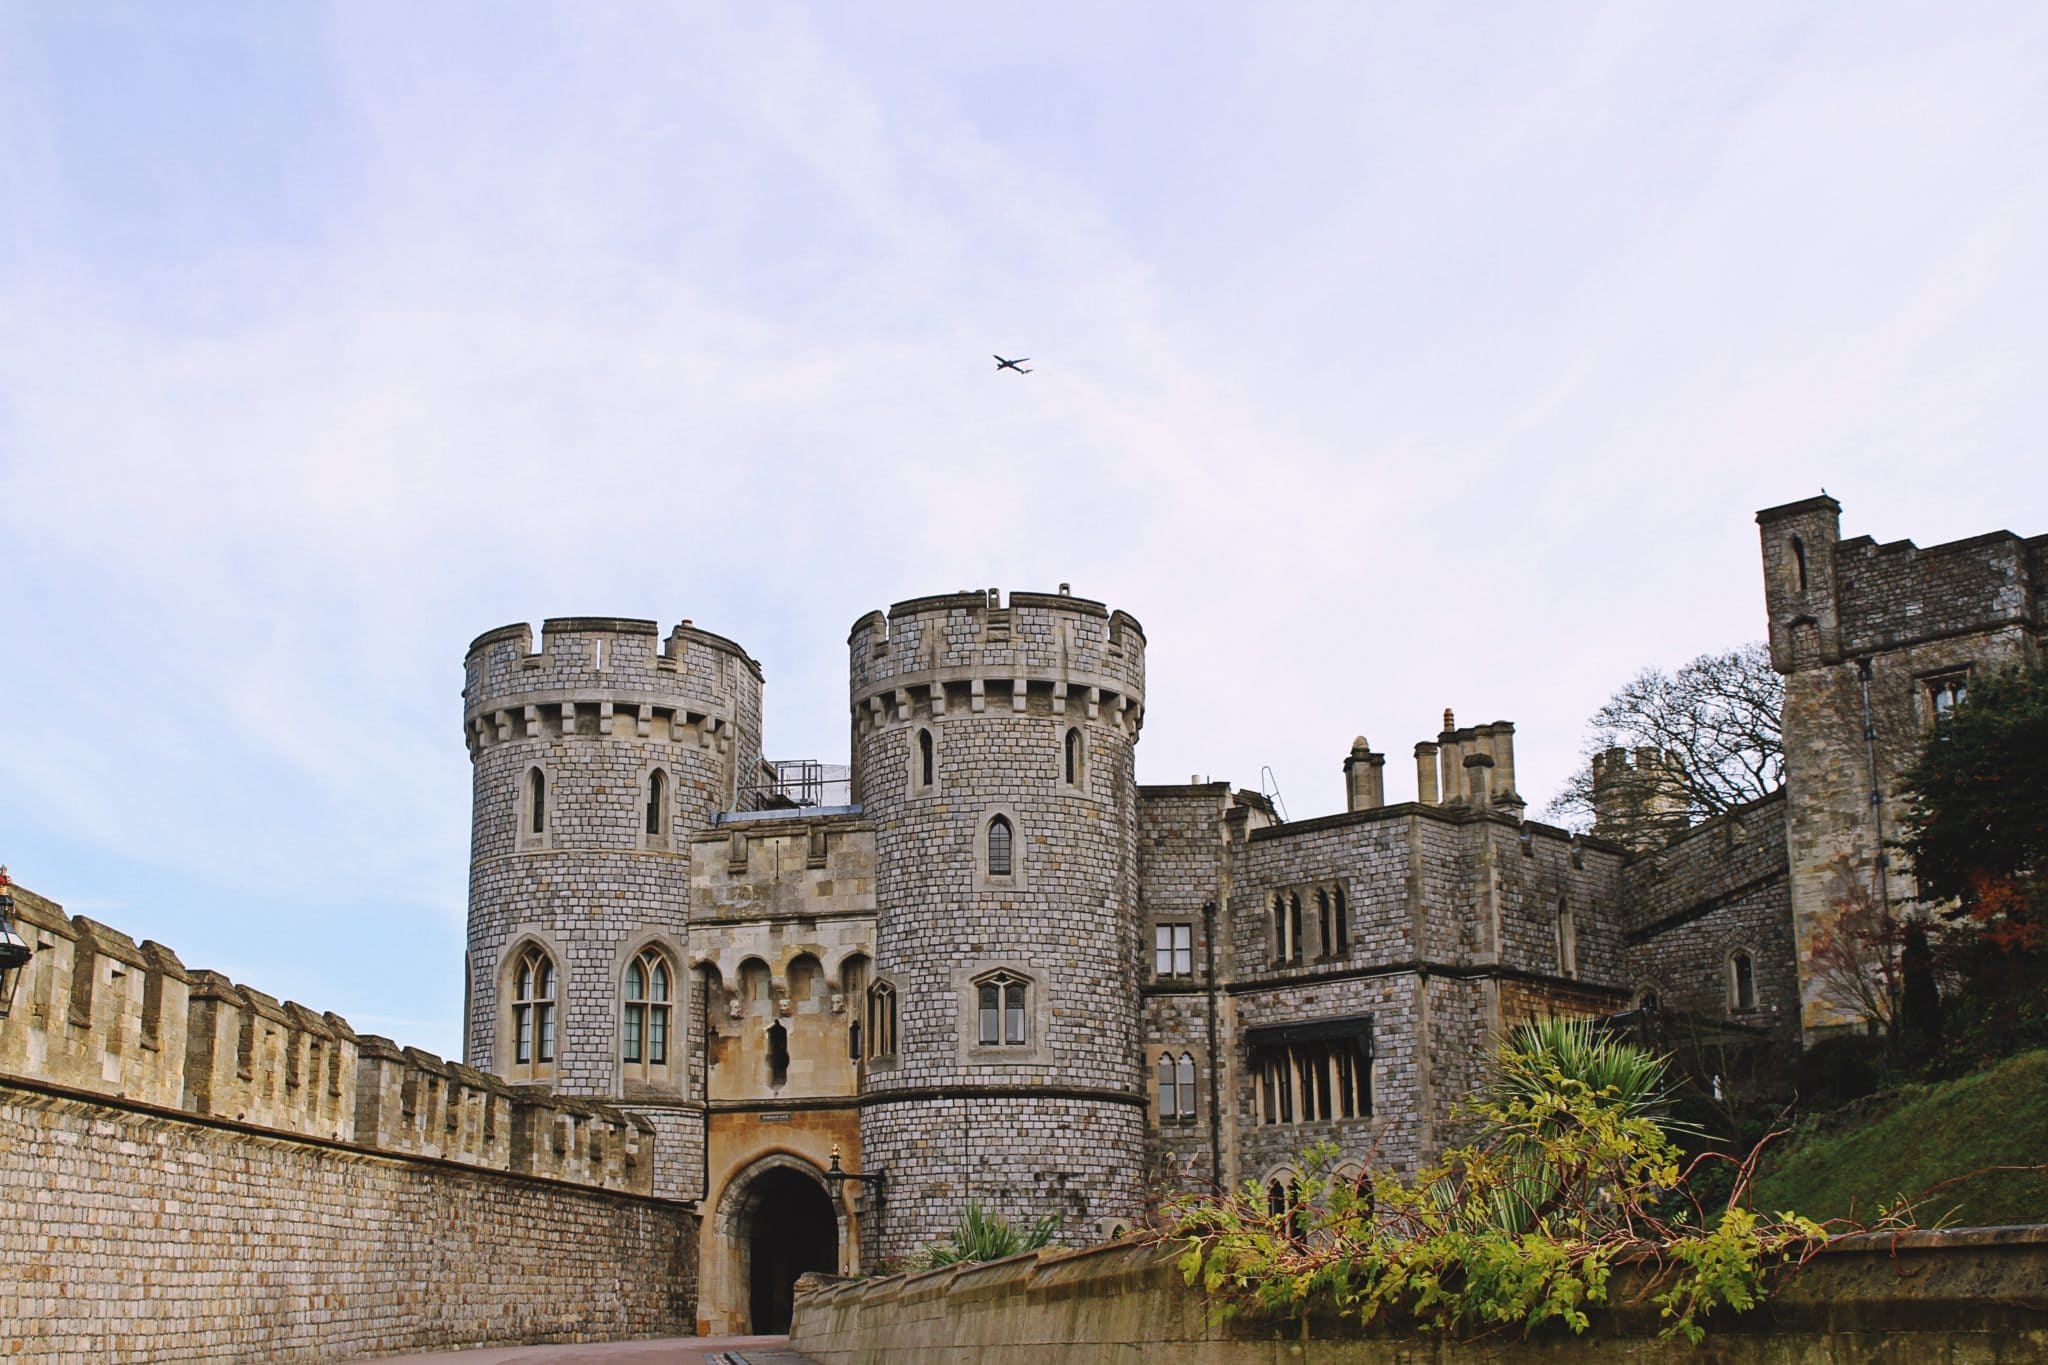 A day trip to Windsor and Visiting Windsor Castle England